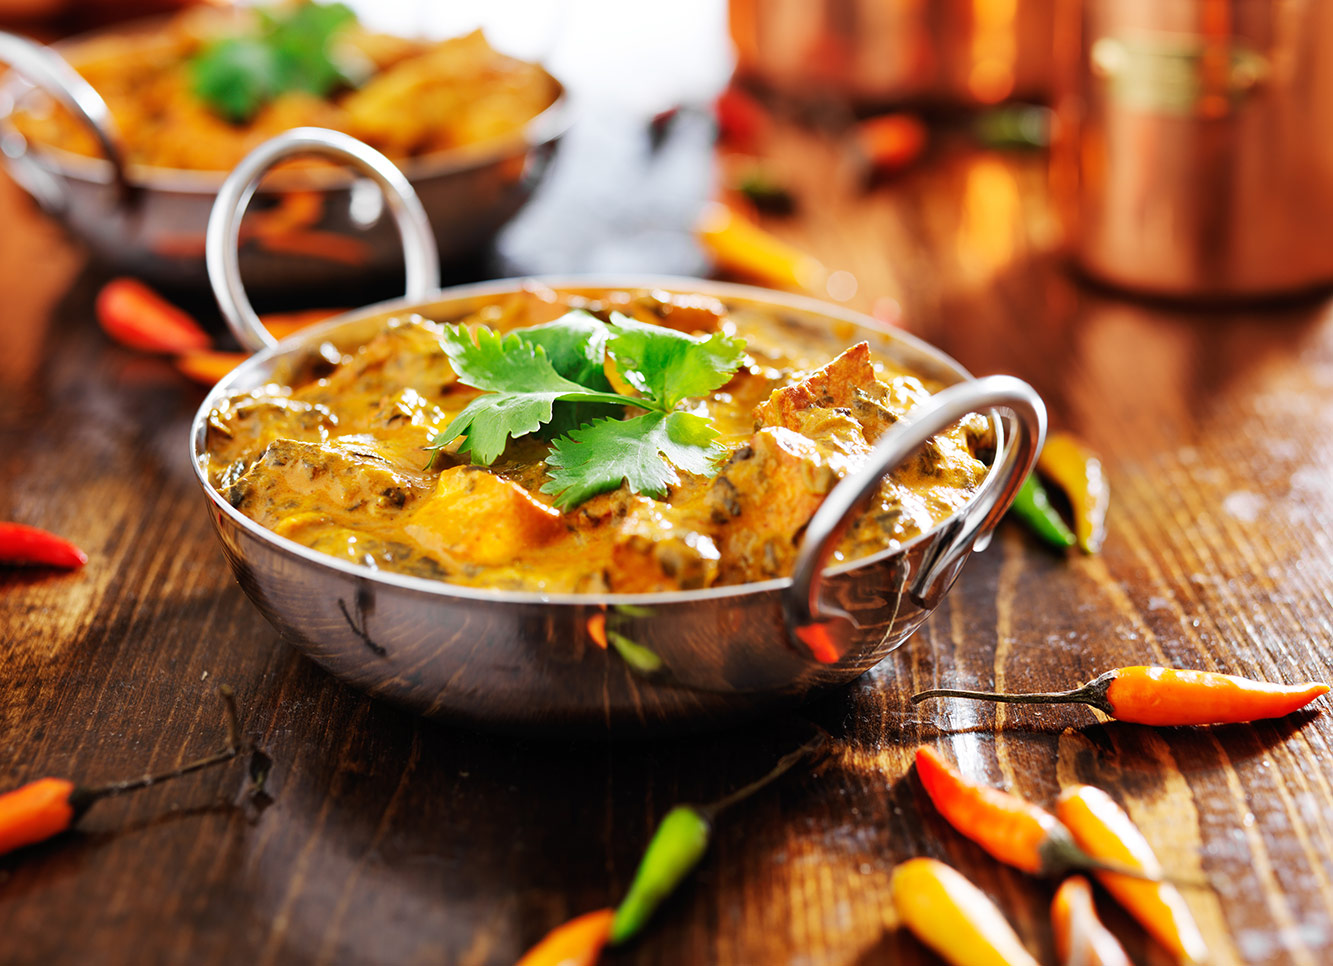 Restaurant and Takeaway Vegetable Curry Dil Tandoori SS13